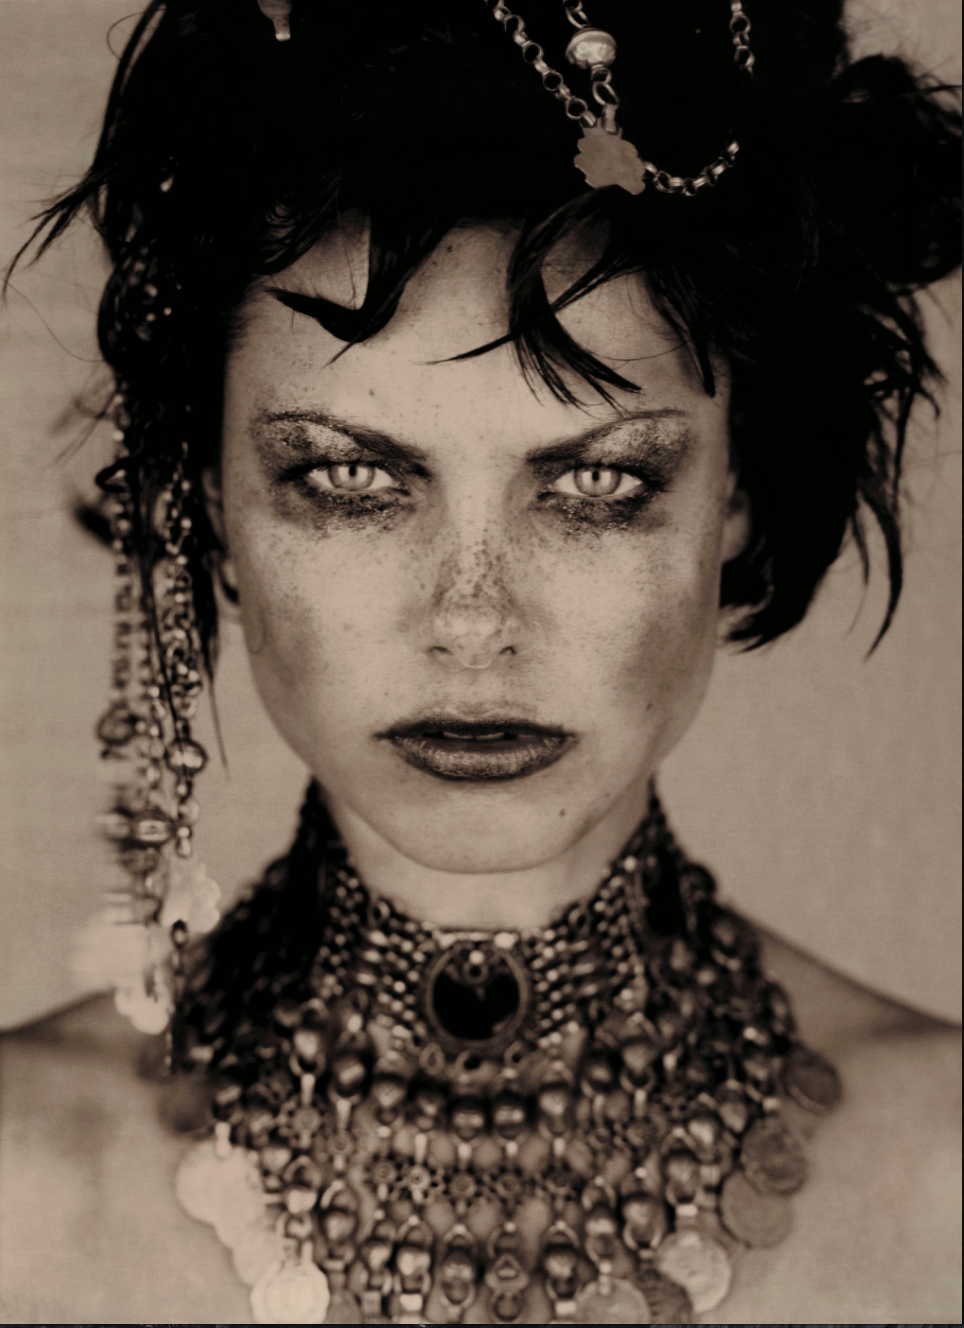 MARC LAGRANGE // BONNE THE FACE